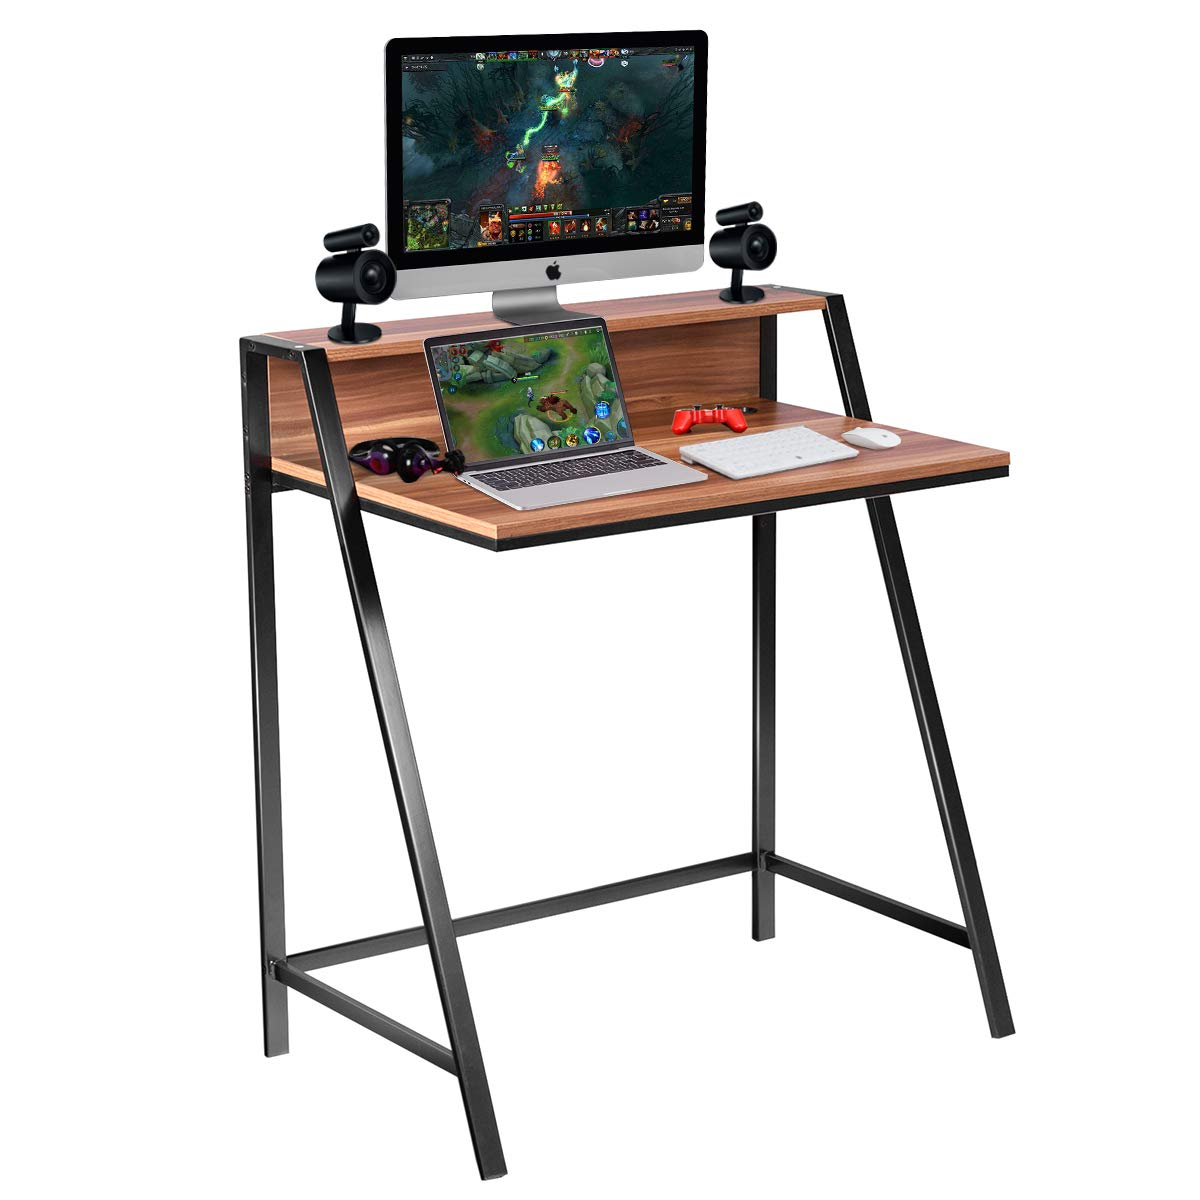 - Tangkula Small Gaming Desk, 2 Tier Computer Desk, Home Office Wood